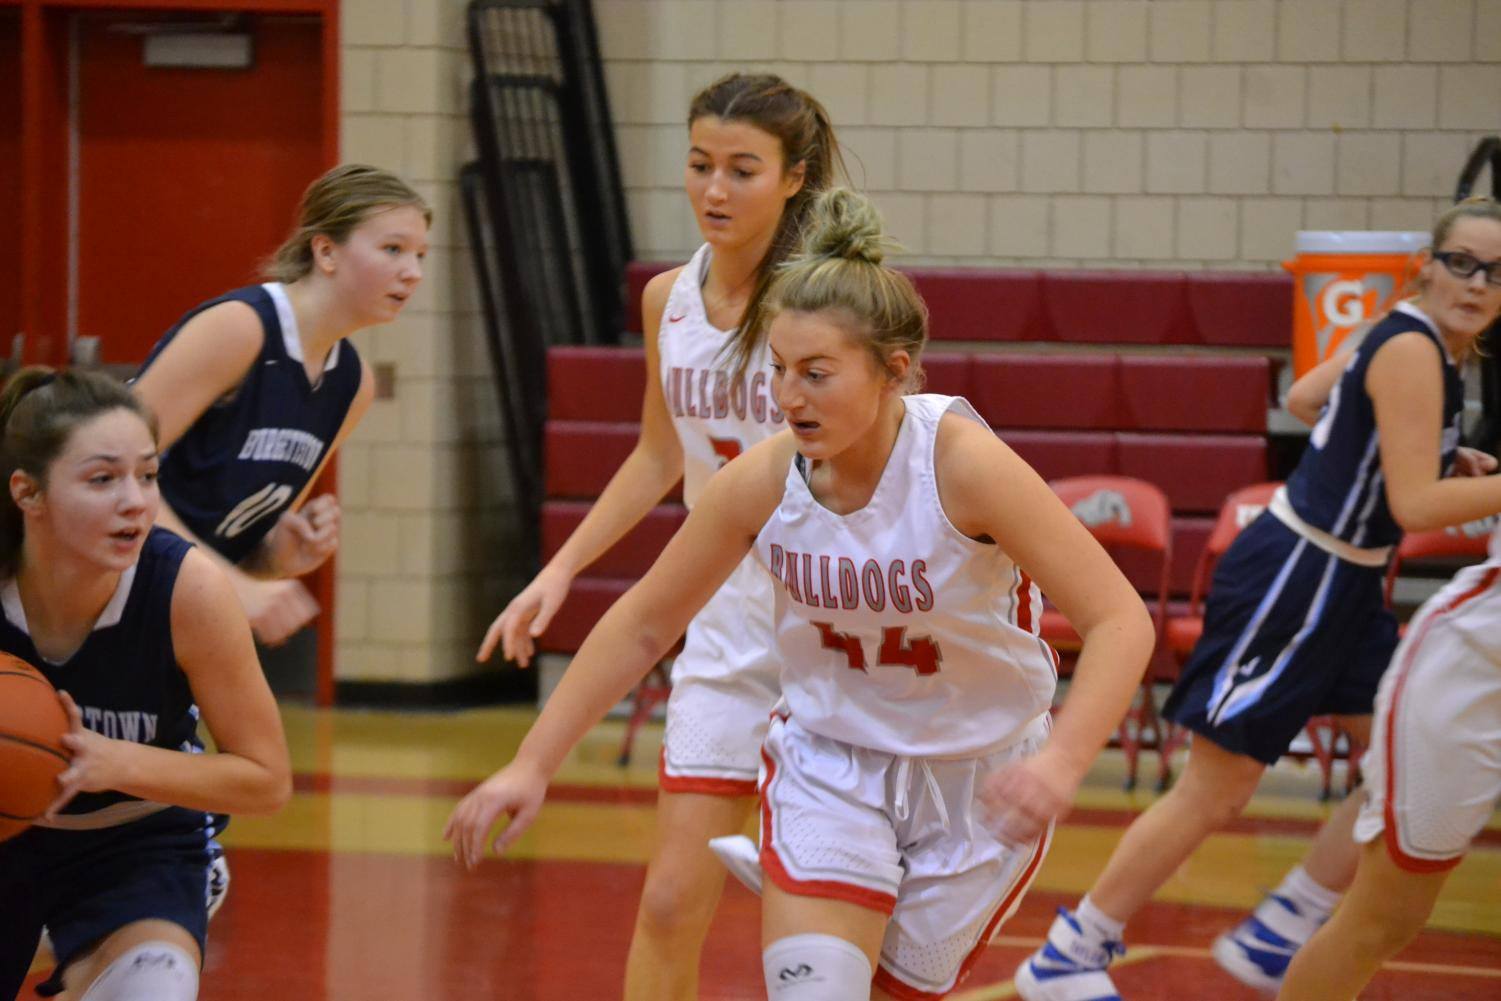 Senior Chloe Keller and sophomore Karissa Mercier watch the ball for an opportunity to steal on a game against Burgettstown on Jan. 11.